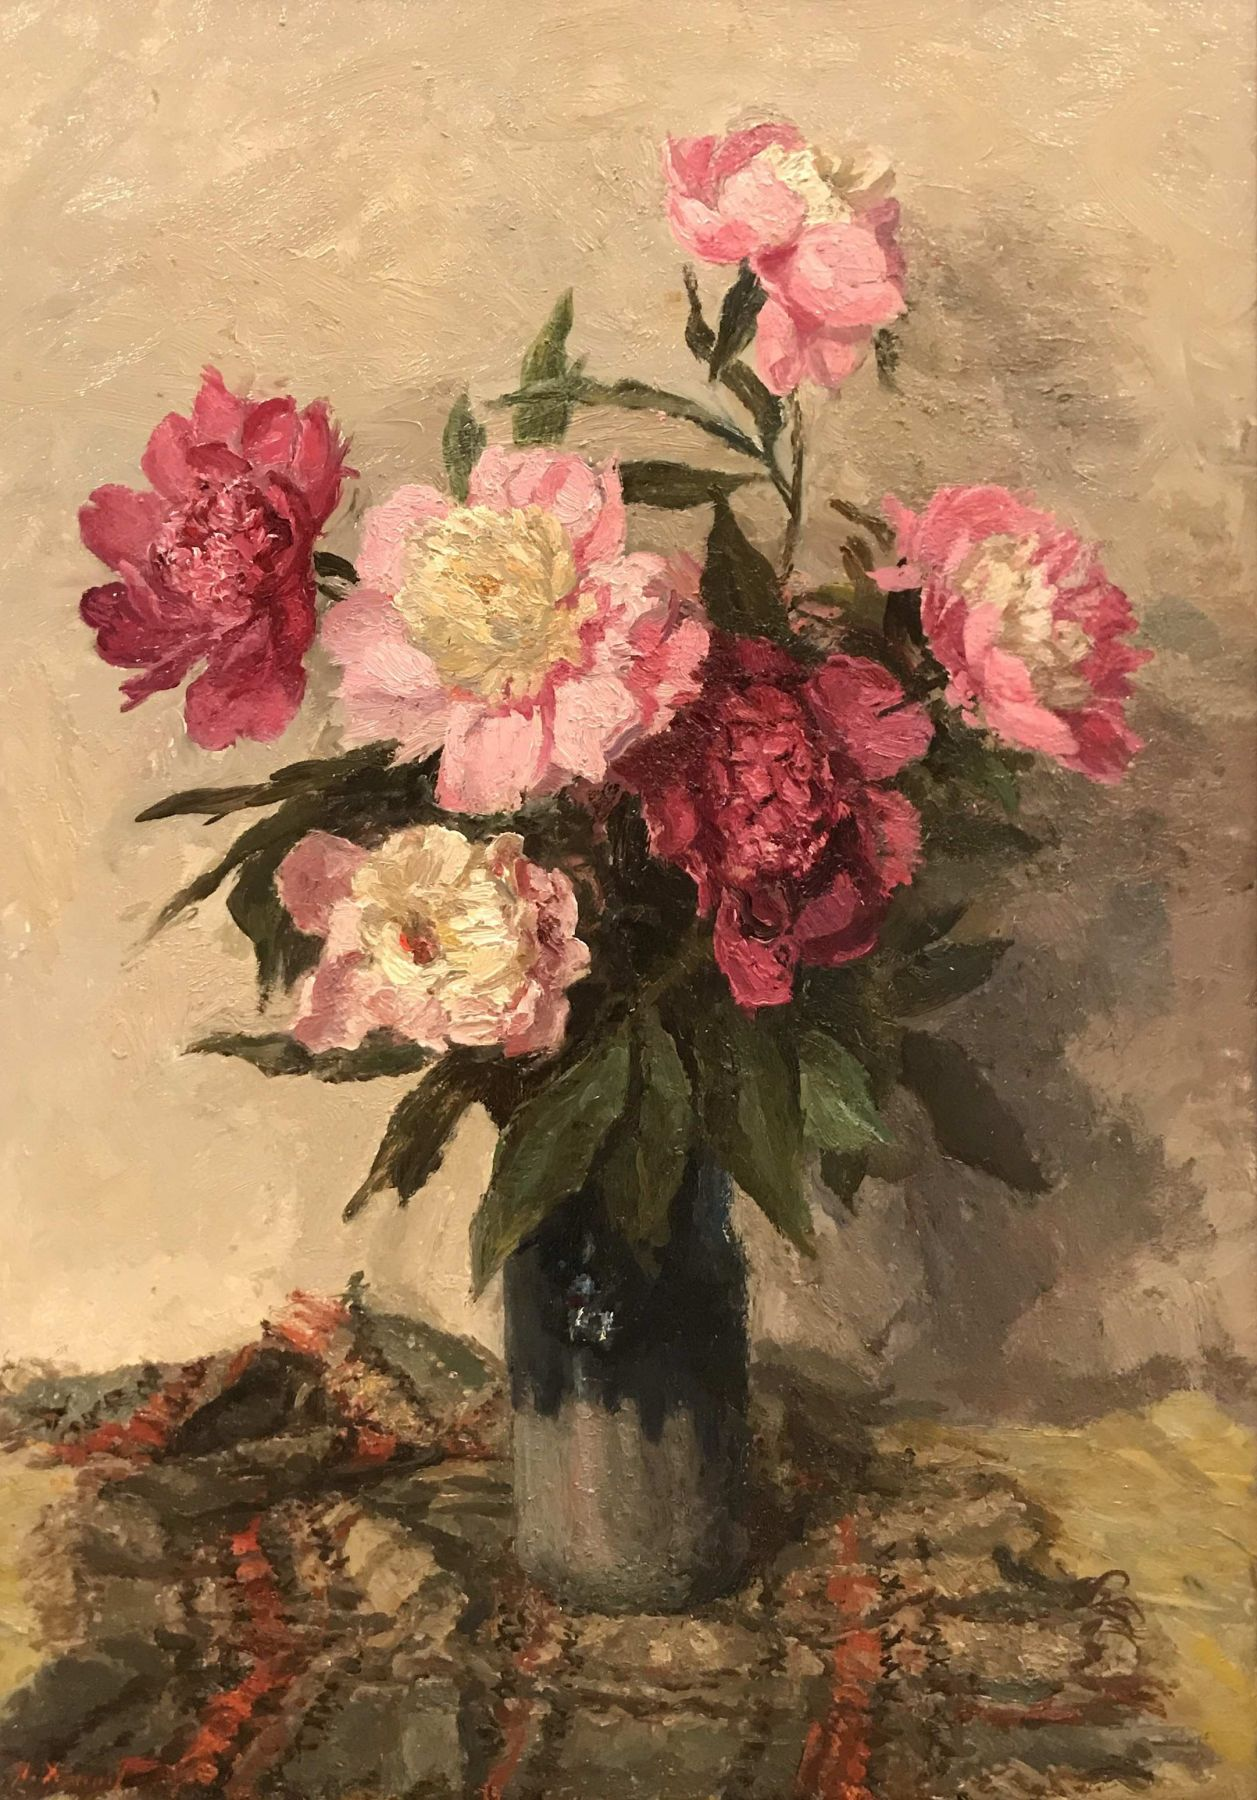 Still life with peonies.